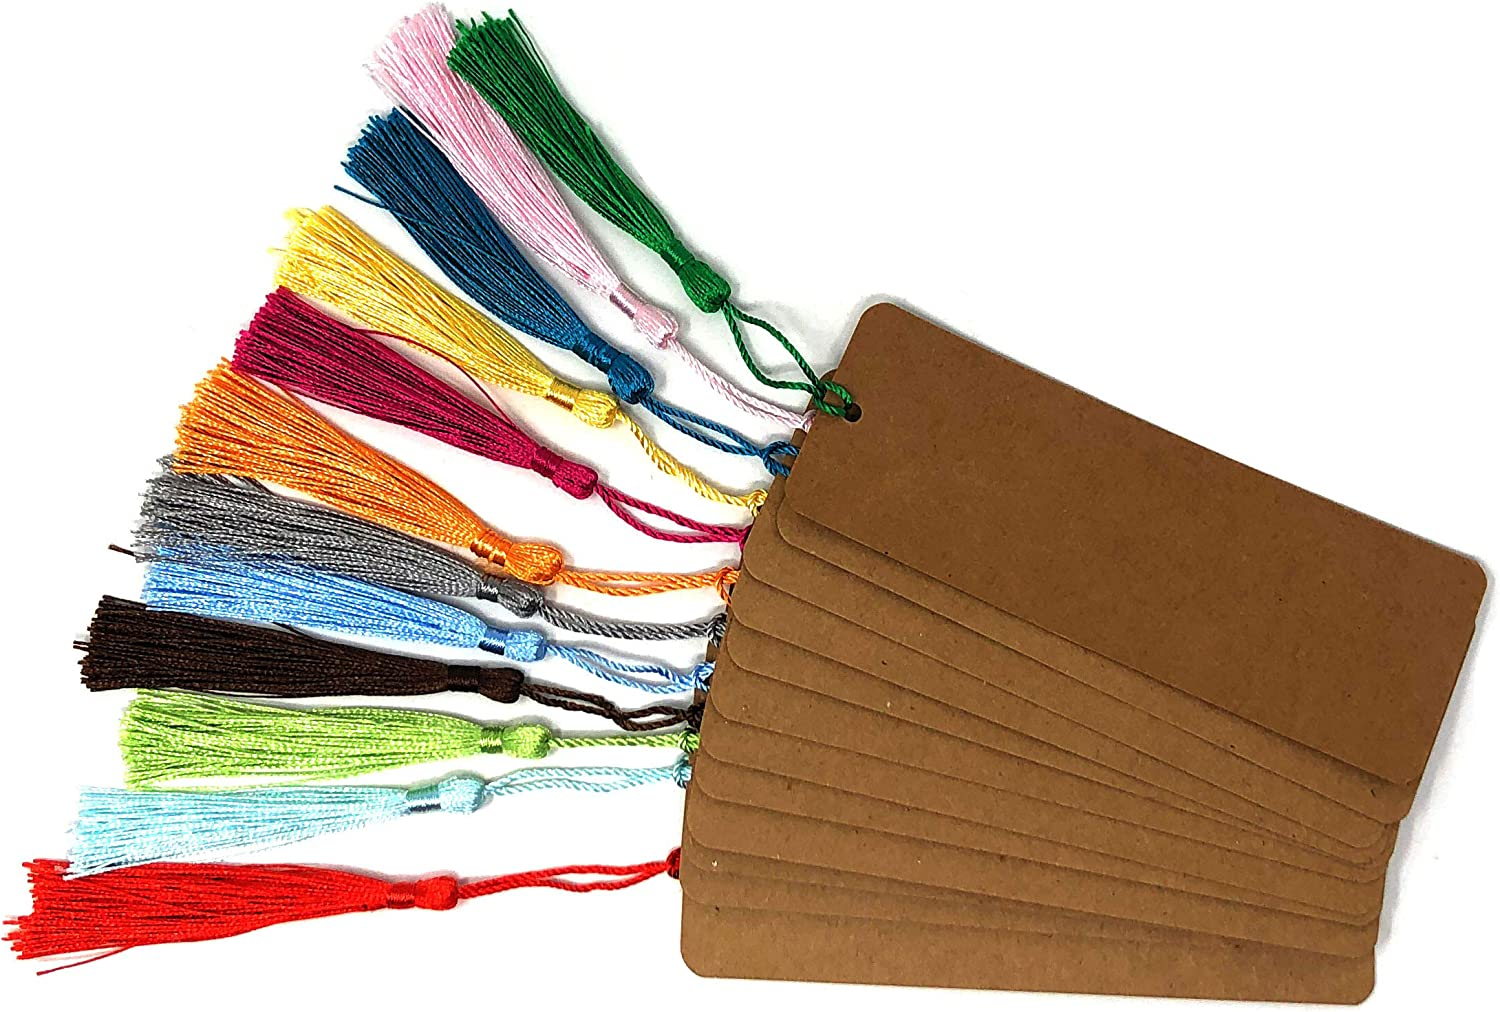 Crafts 5.5 x 2 inch School Supply Rusoji 24pcs Blank White and Brown Kraft Paper Cardstock Bookmarks with Colorful Tassels for DIY Art Projects Tags for Gifts Stationery